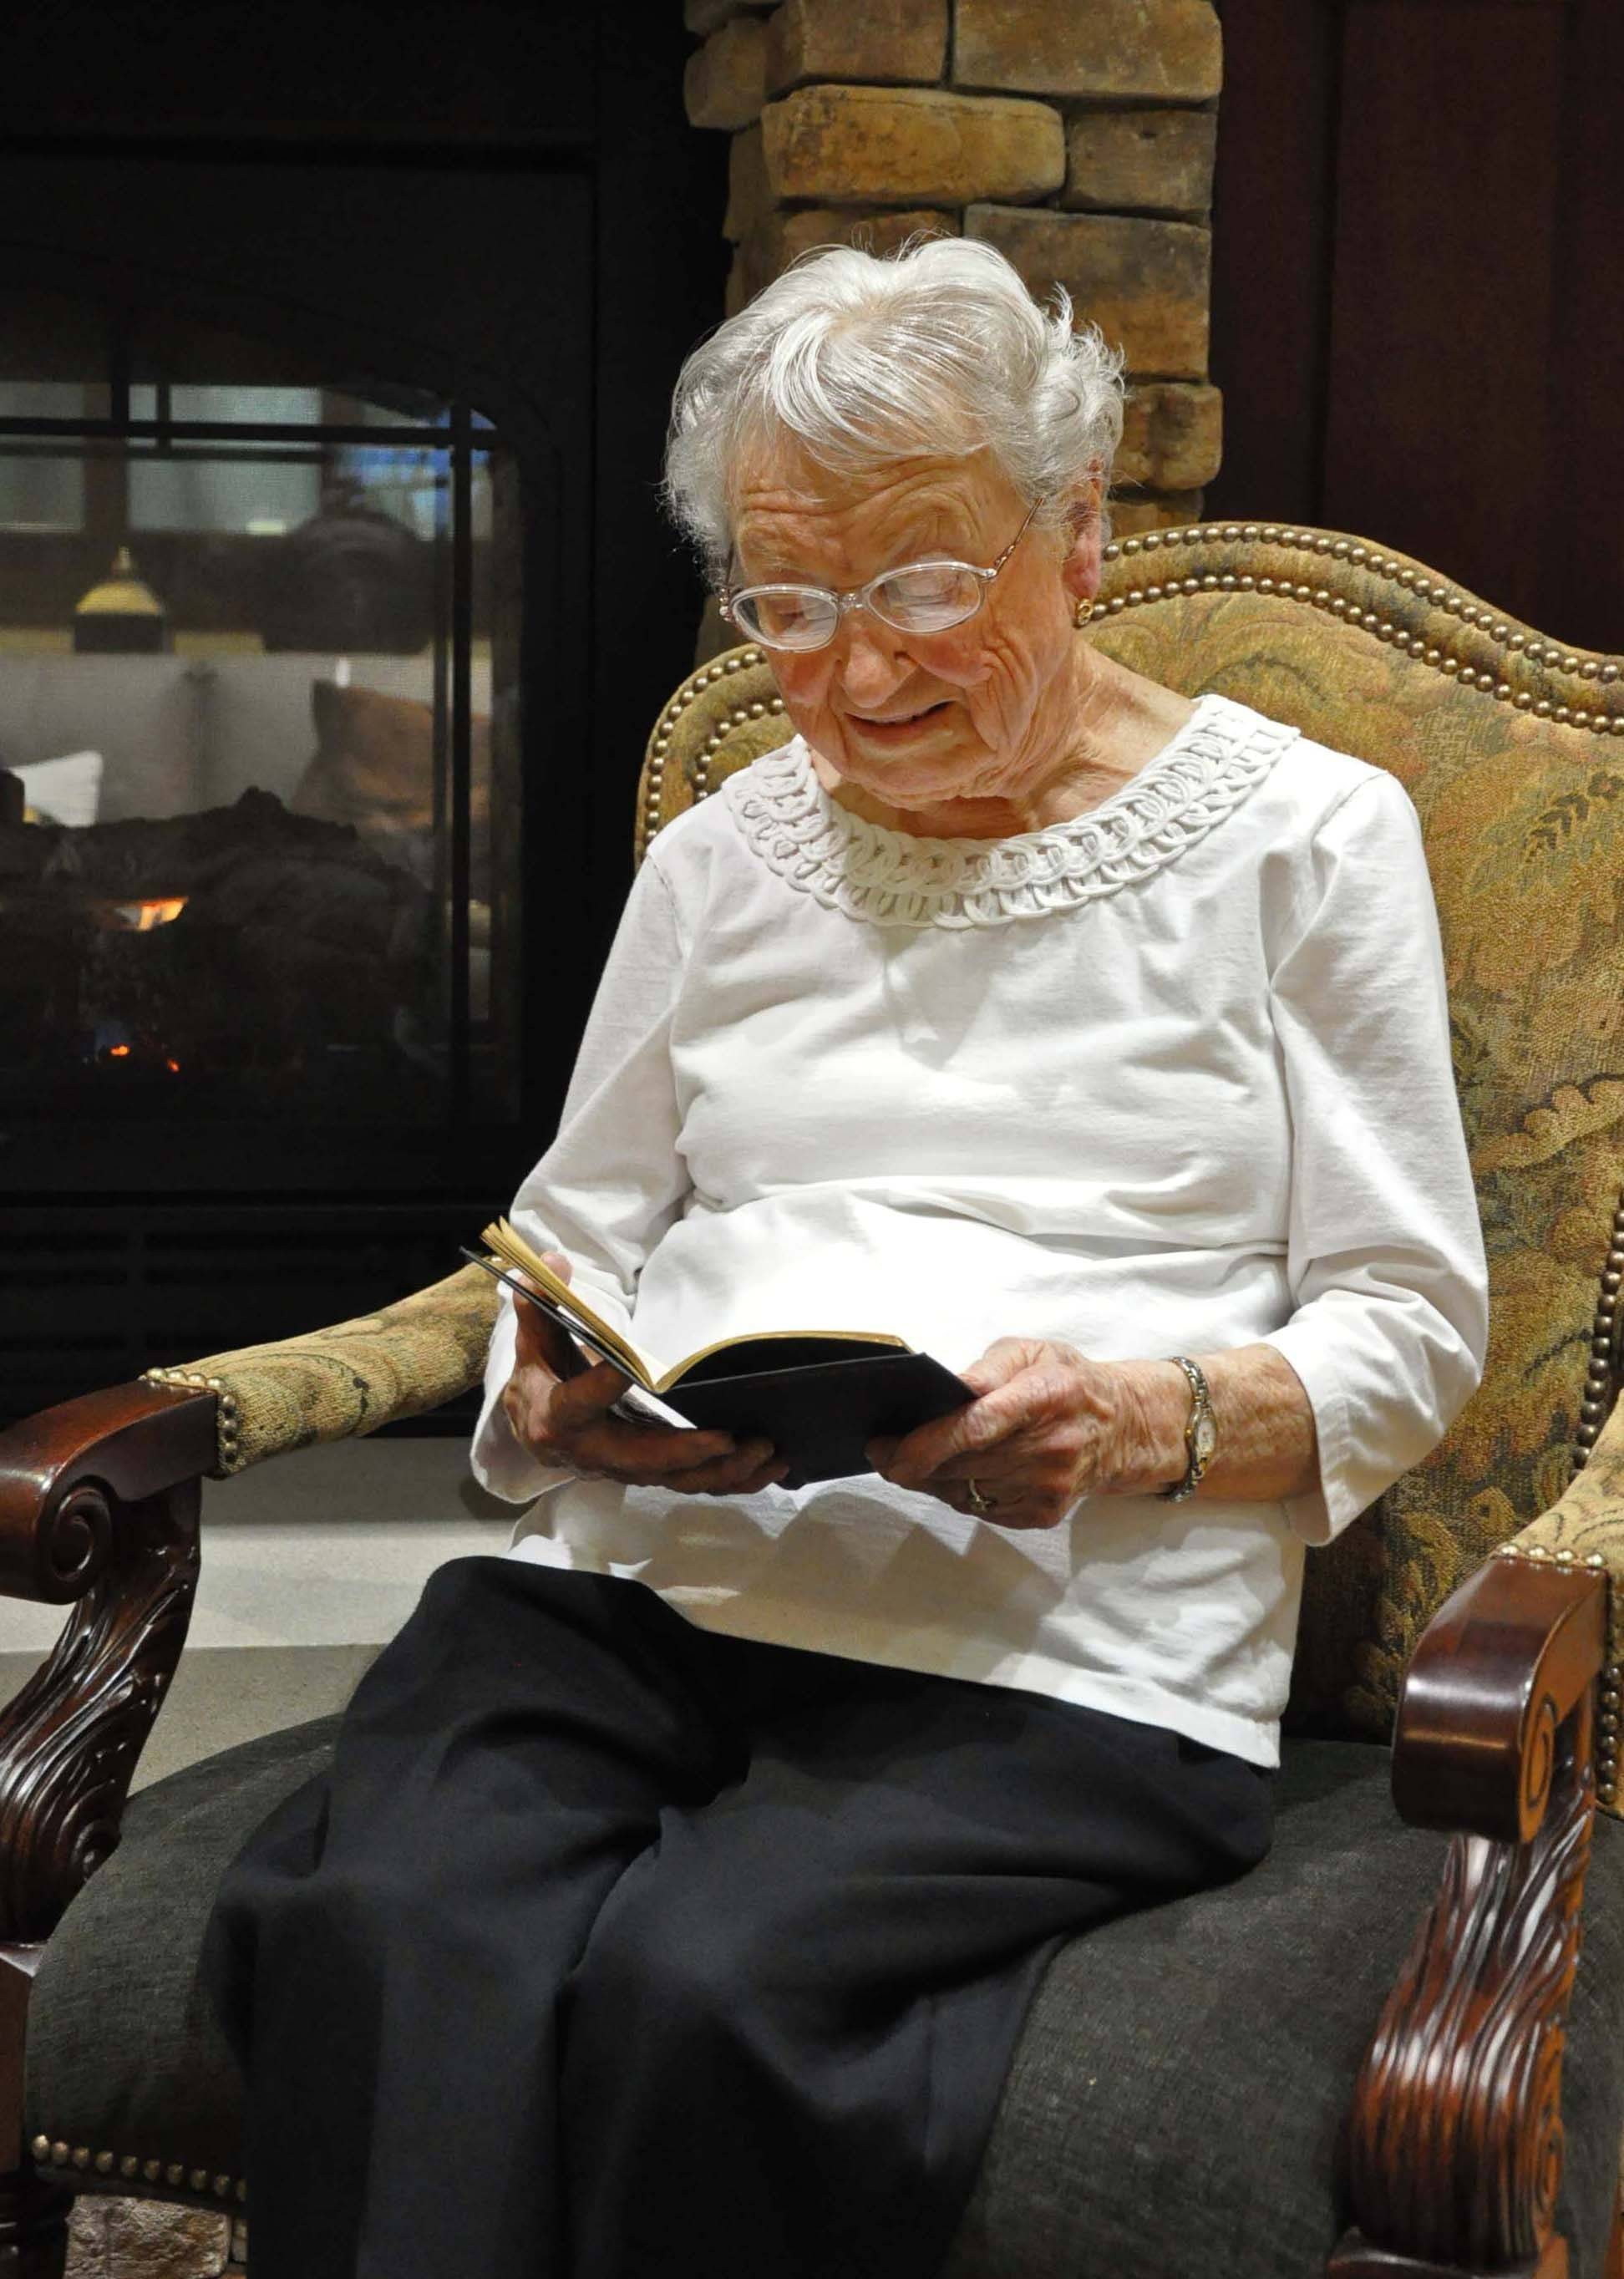 Batavia author Barbara Lytle, in her 90s, has published stories about her life, including details of her mission trips to West Africa.